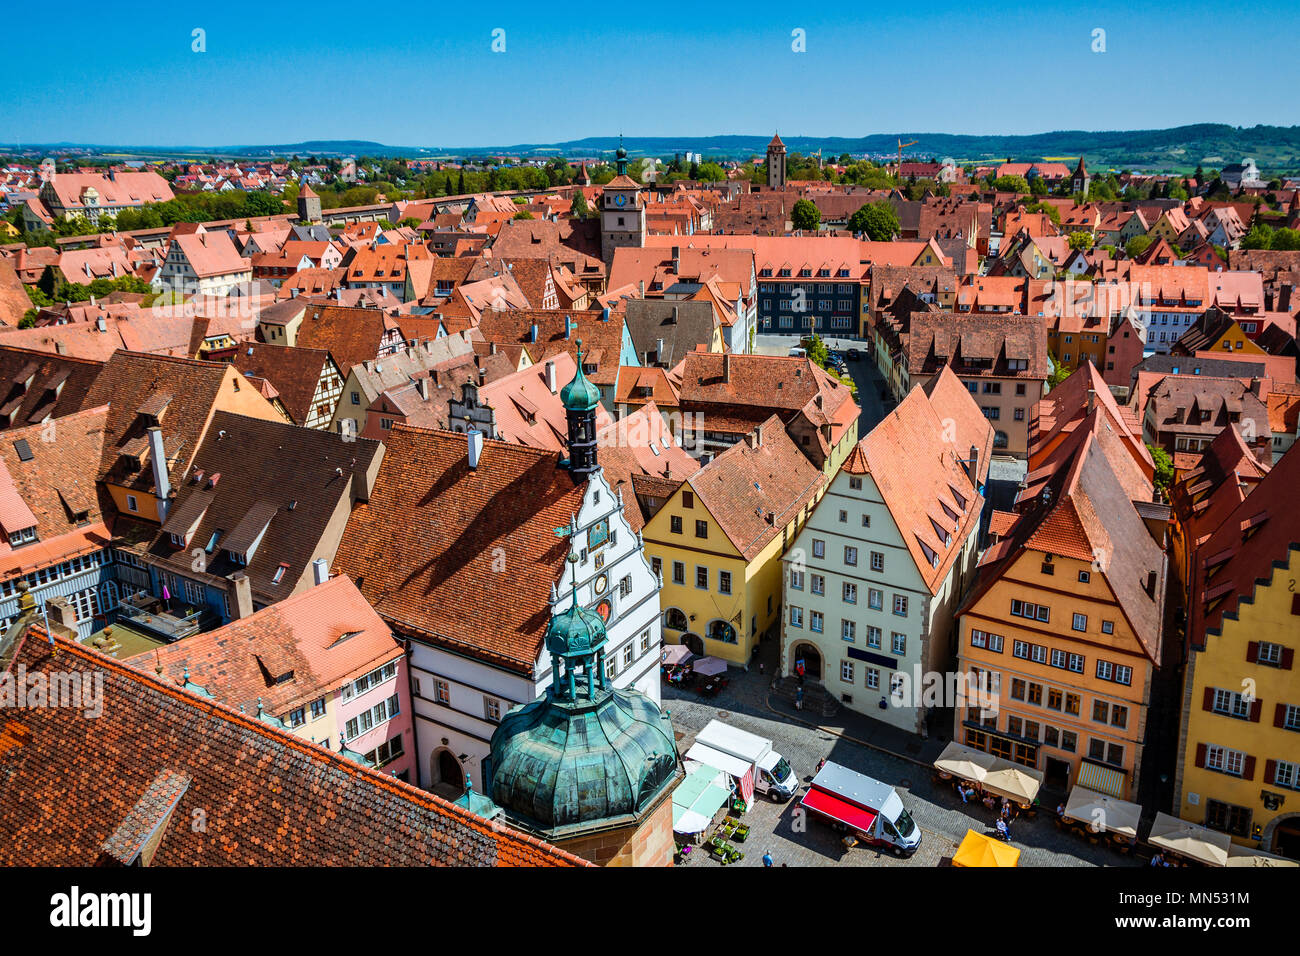 Scenic summer aerial panorama of the Old Town town in Rothenburg ob der Tauber, Bavaria, Germany - Stock Image